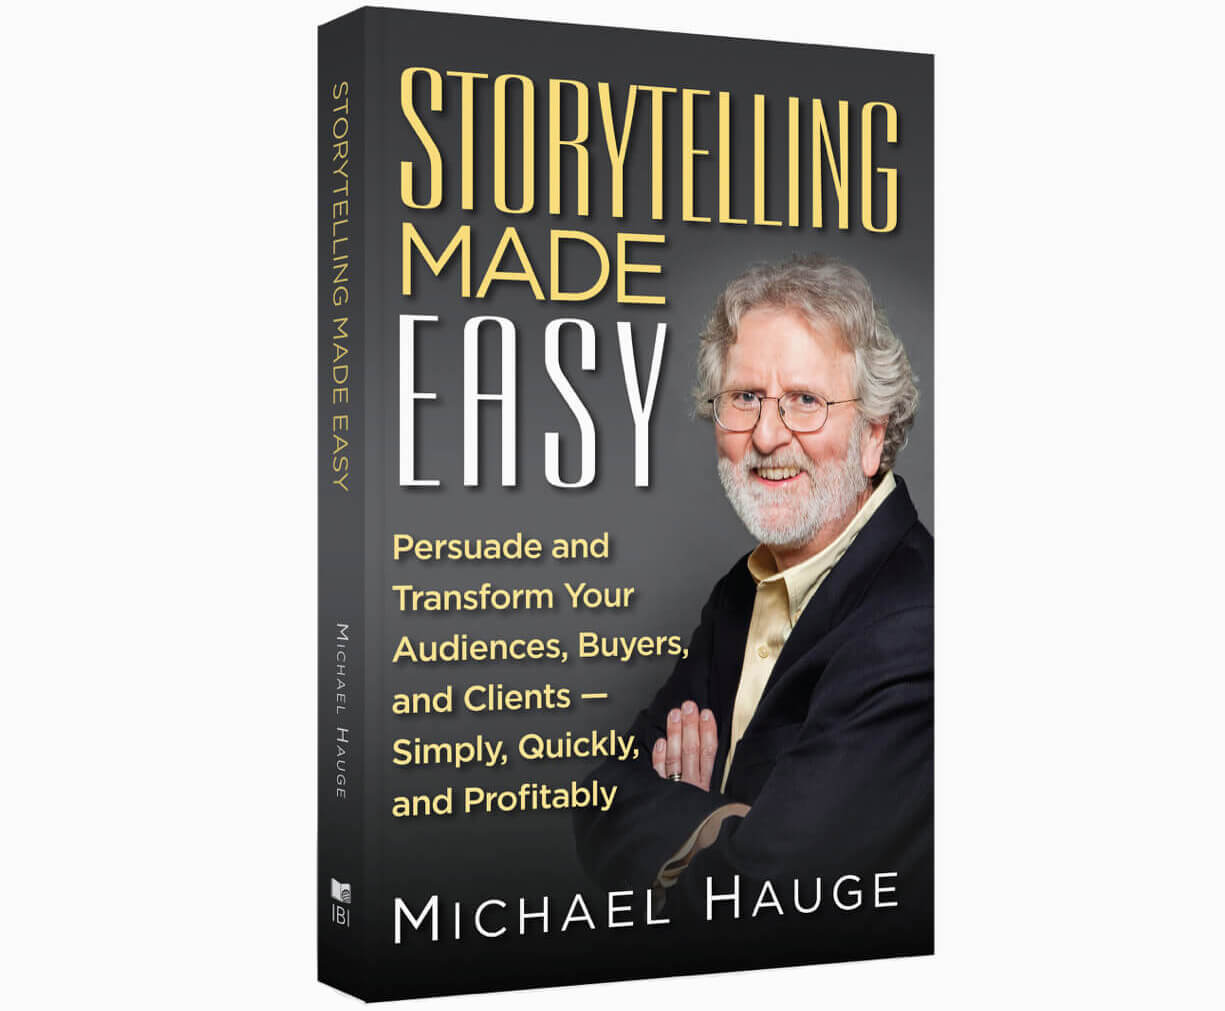 Storytelling Made Easy